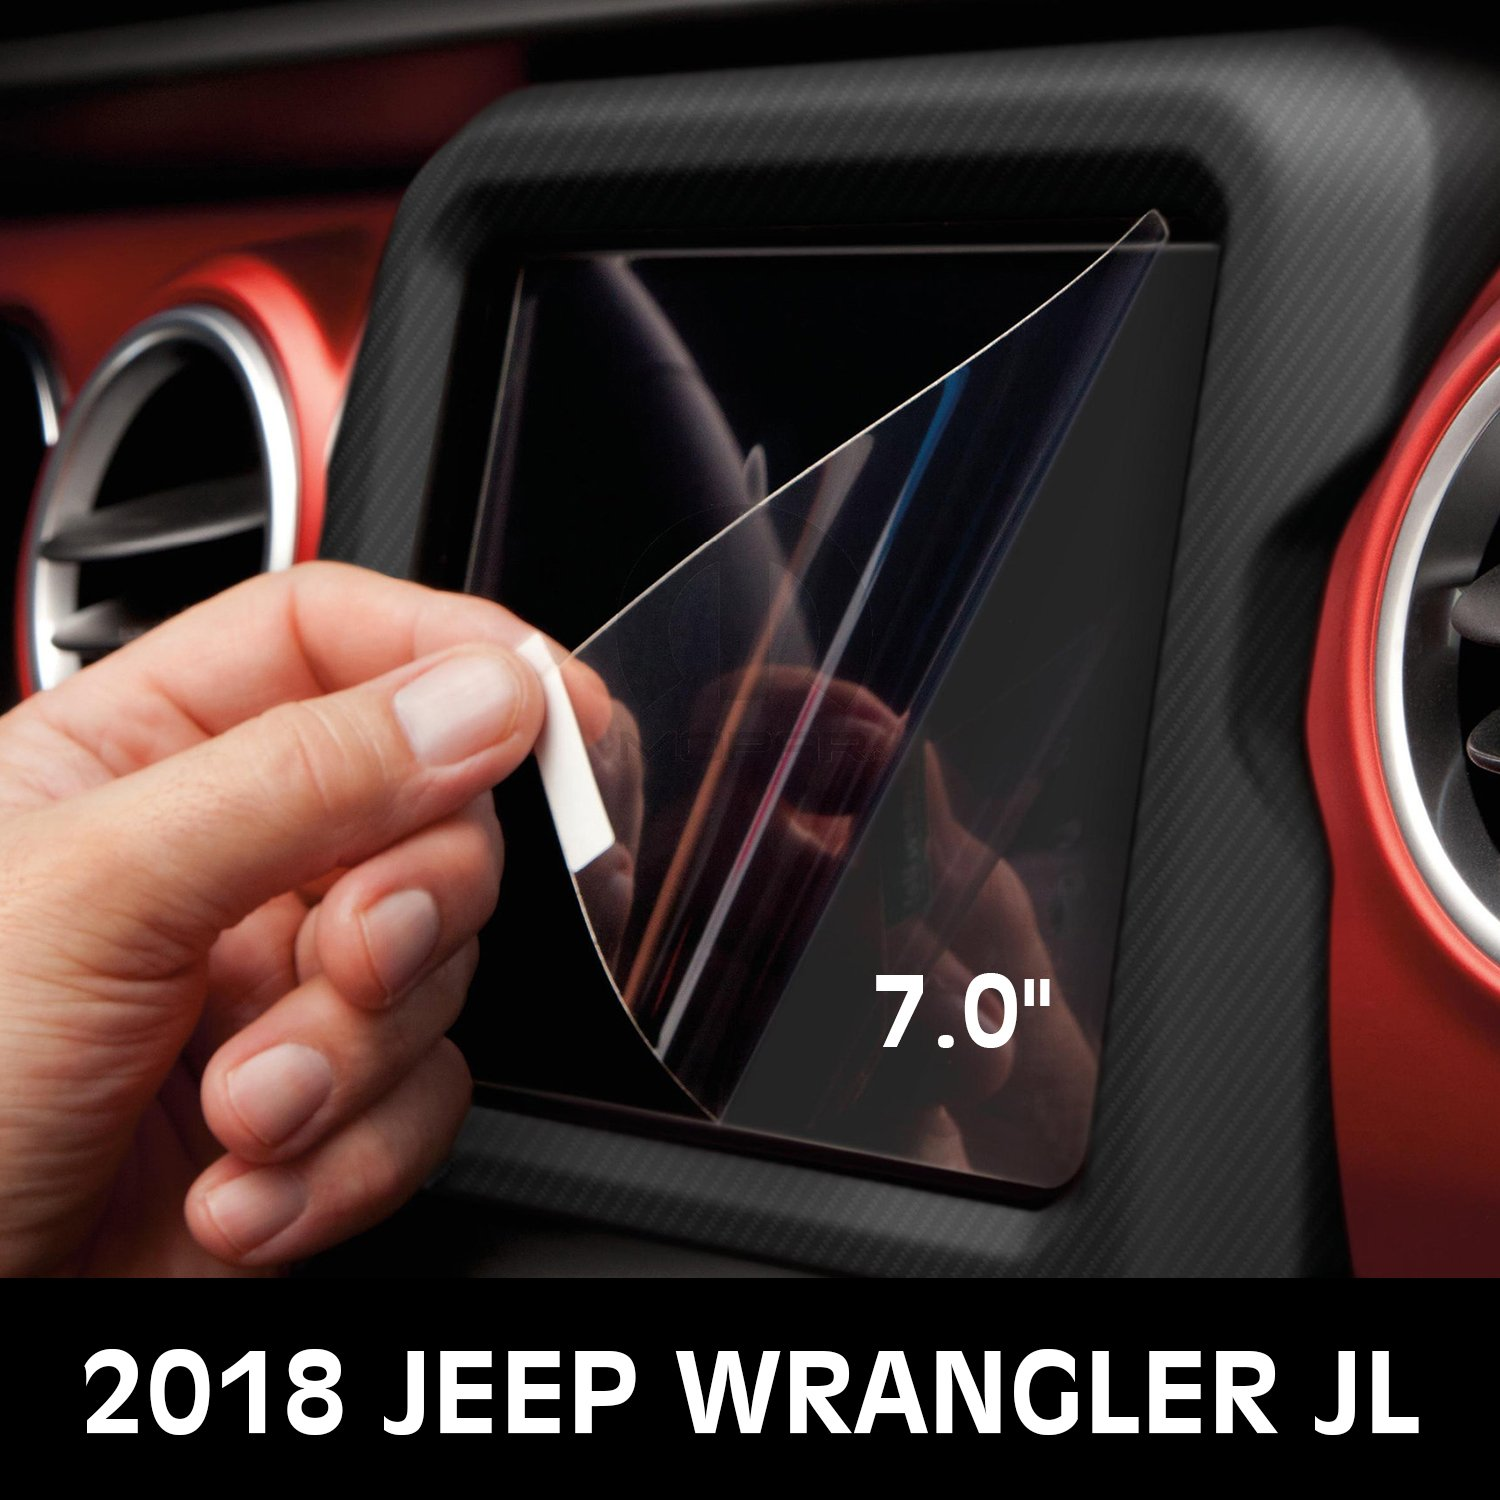 IBACP 7.0 inch Media Center Screen Uconnect Car Navigation Screen Protector 2018 Jeep Wrangler JL